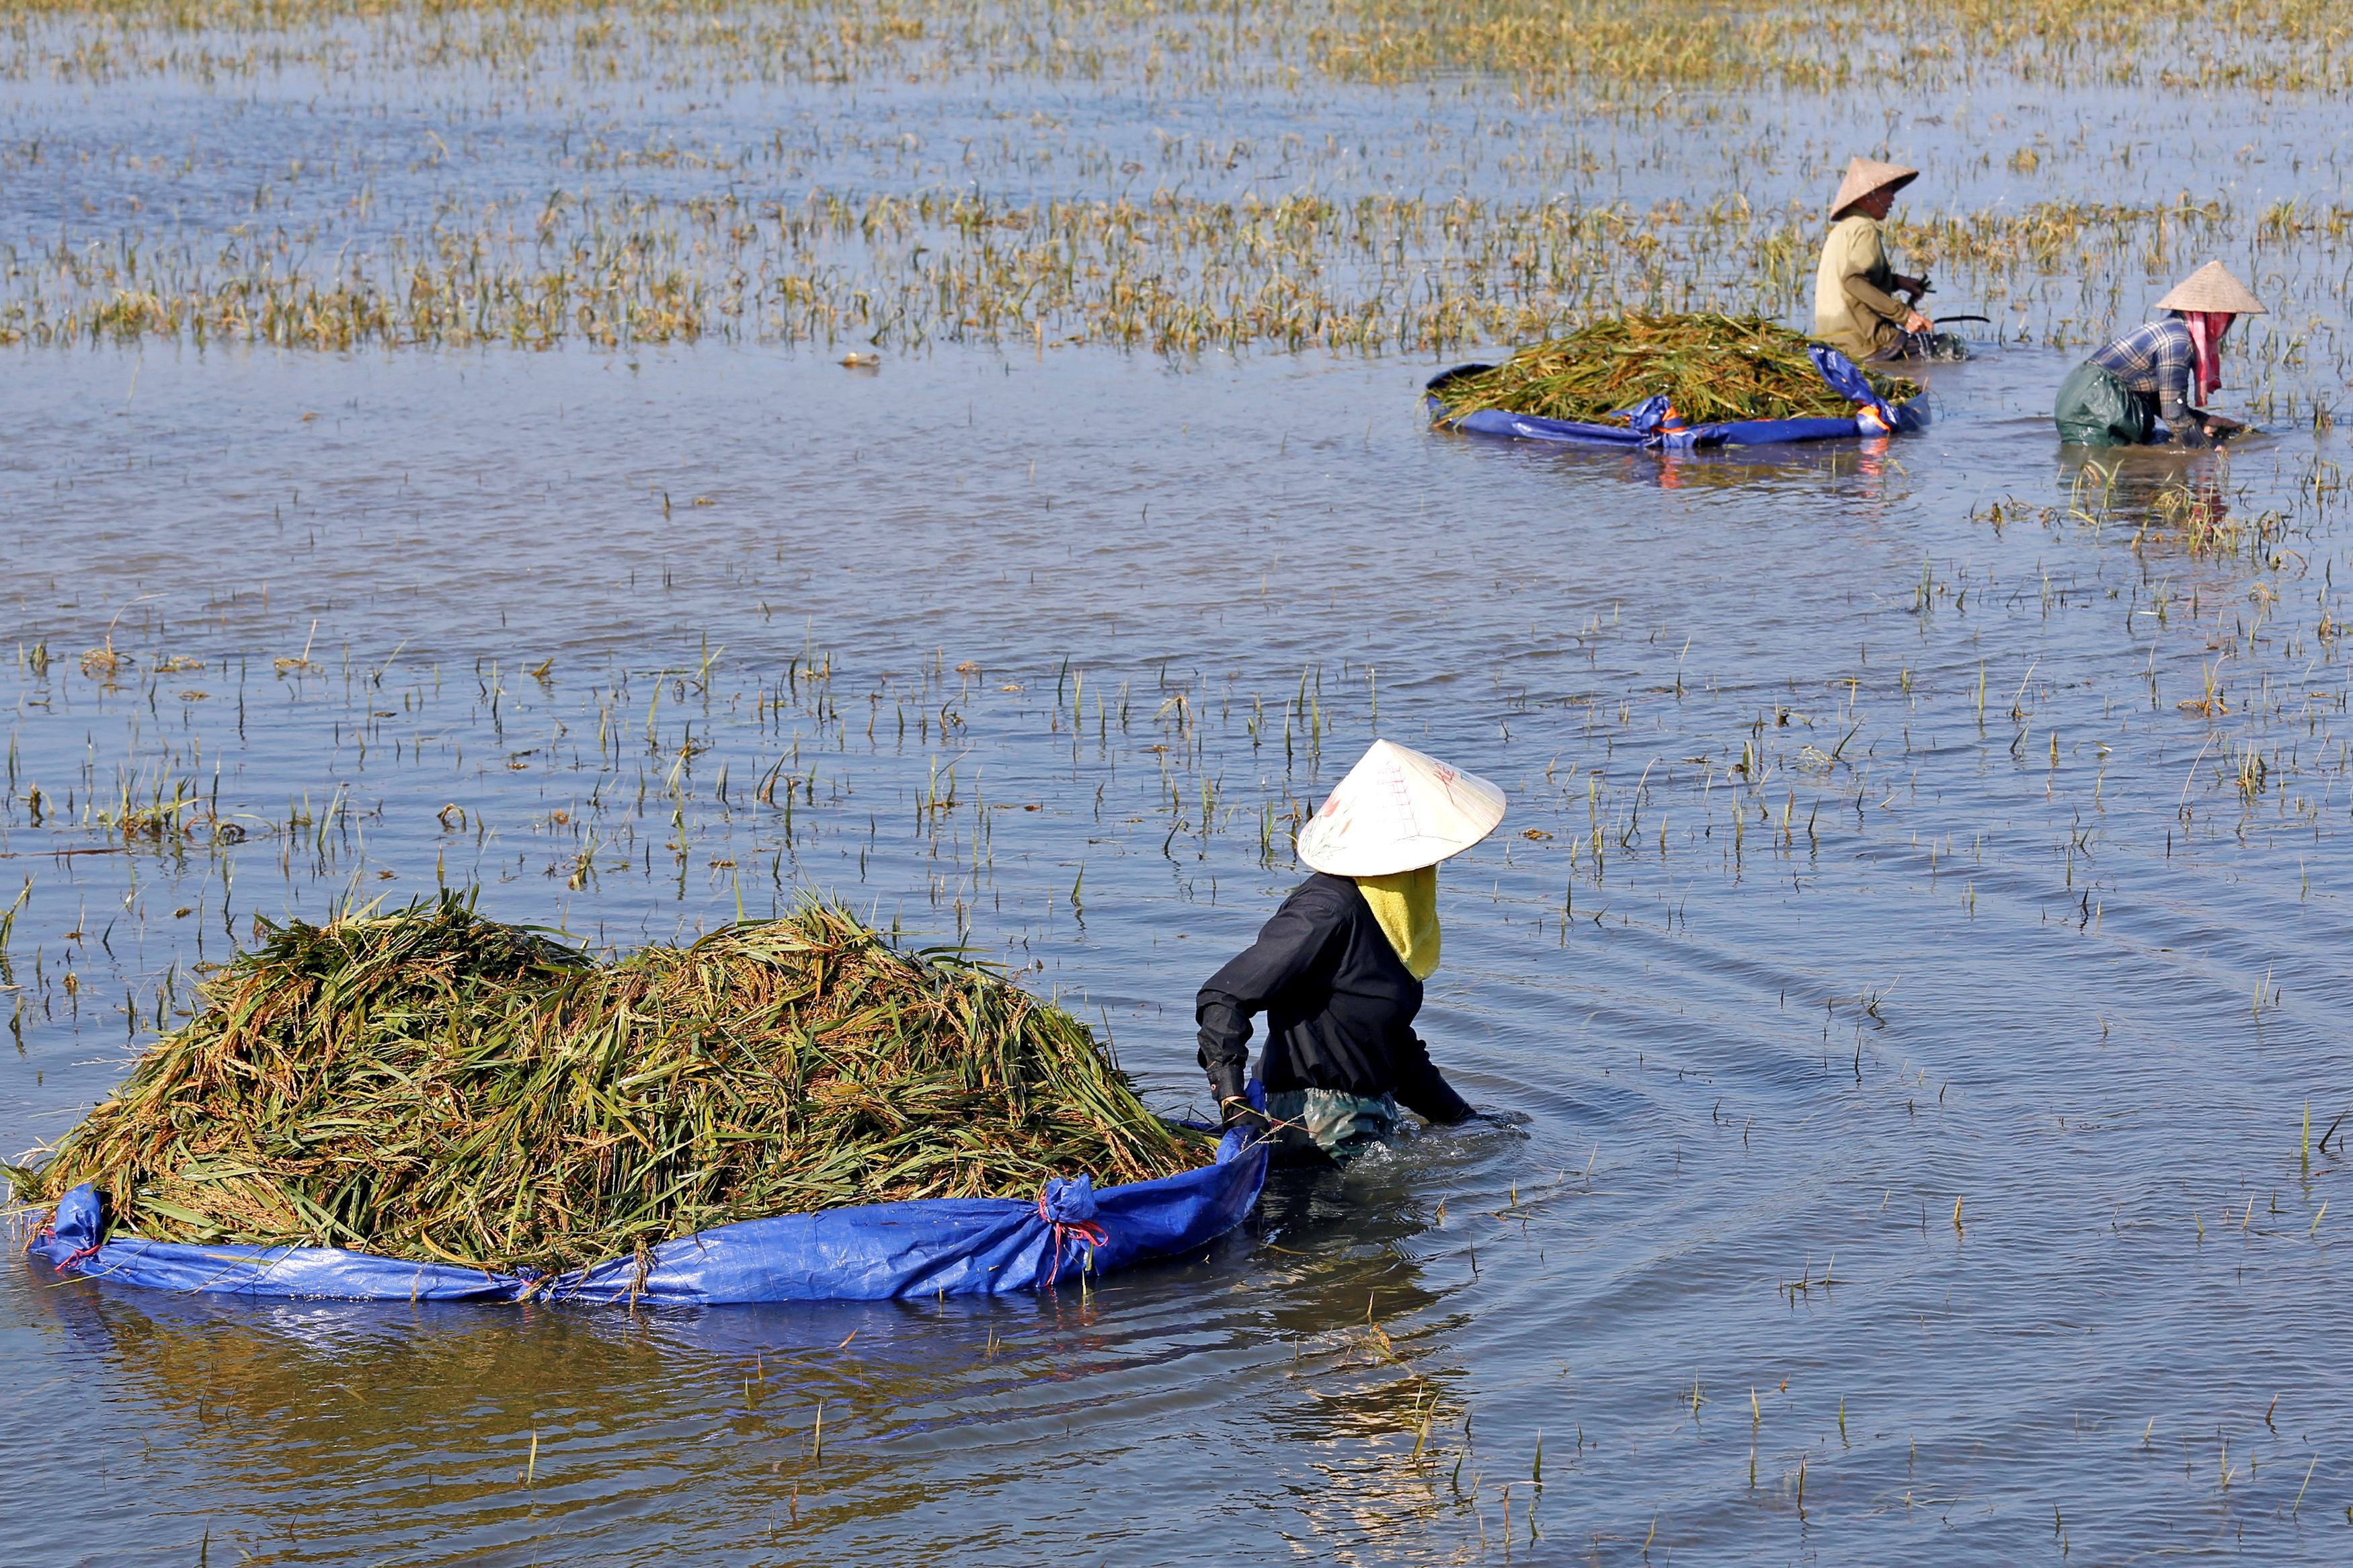 Farmers harvest rice on a flooded field after a heavy rainfall caused by a tropical depression in Ninh Binh province, Vietnam October 14, 2017.